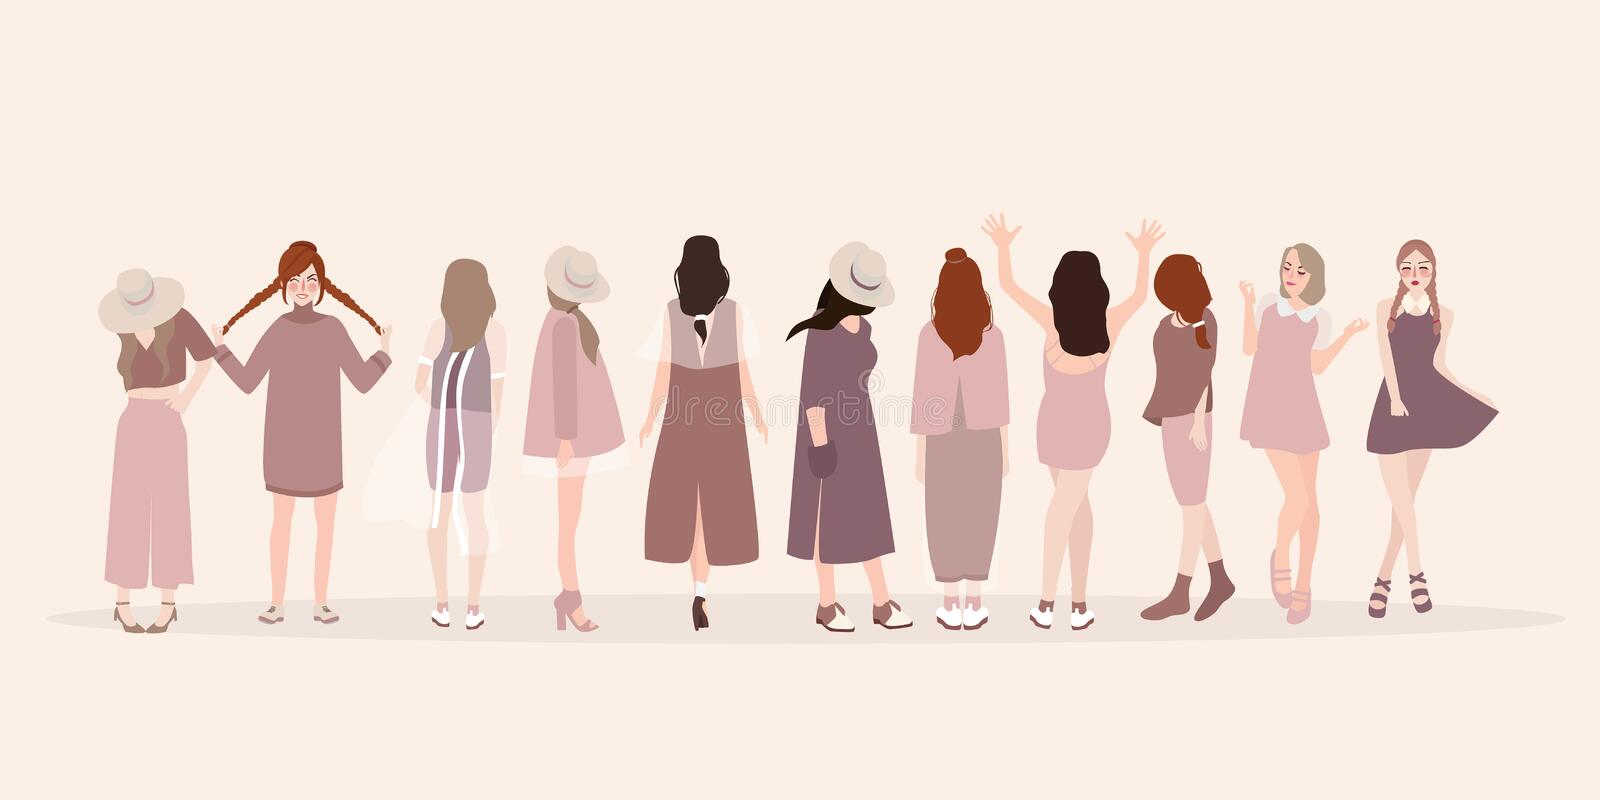 Beautiful young women in fashion clothing. Fashion women. Isolated fashion lady pose clothing show vector illustration